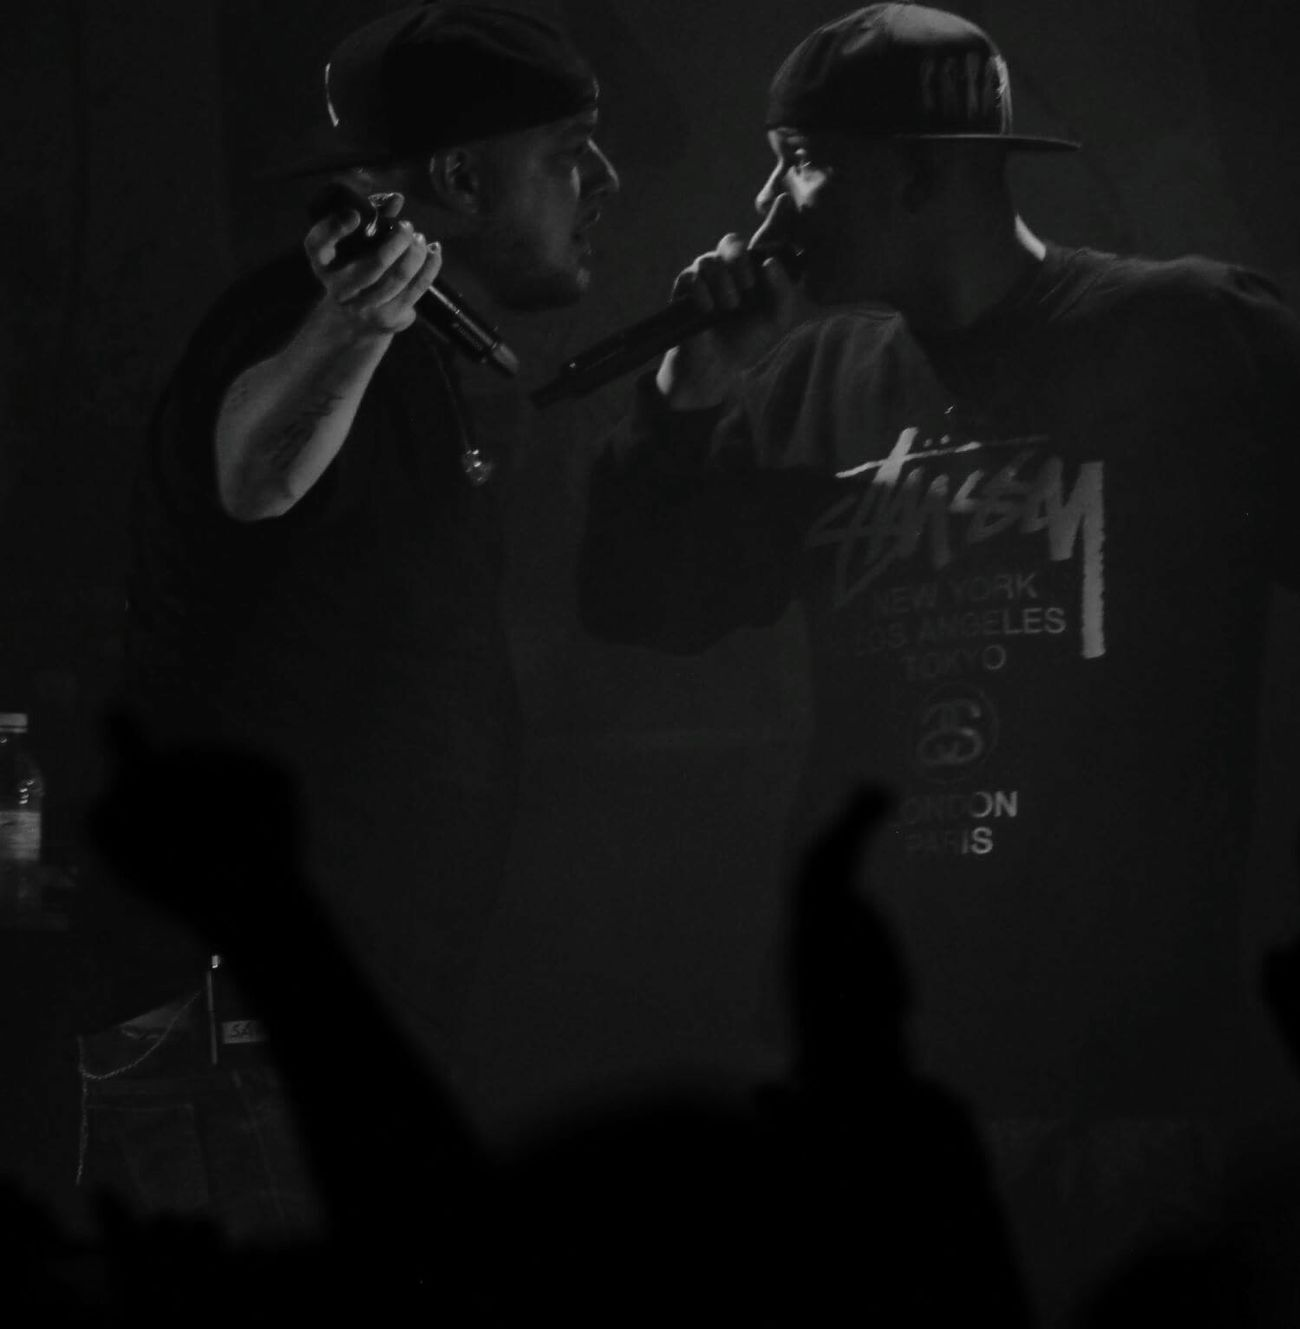 Kool Savas auf Warum Rappst Du 2 Tour. Tourstart Münster. Live Music Koolsavas Laasunltd Live Rap Rapper Music